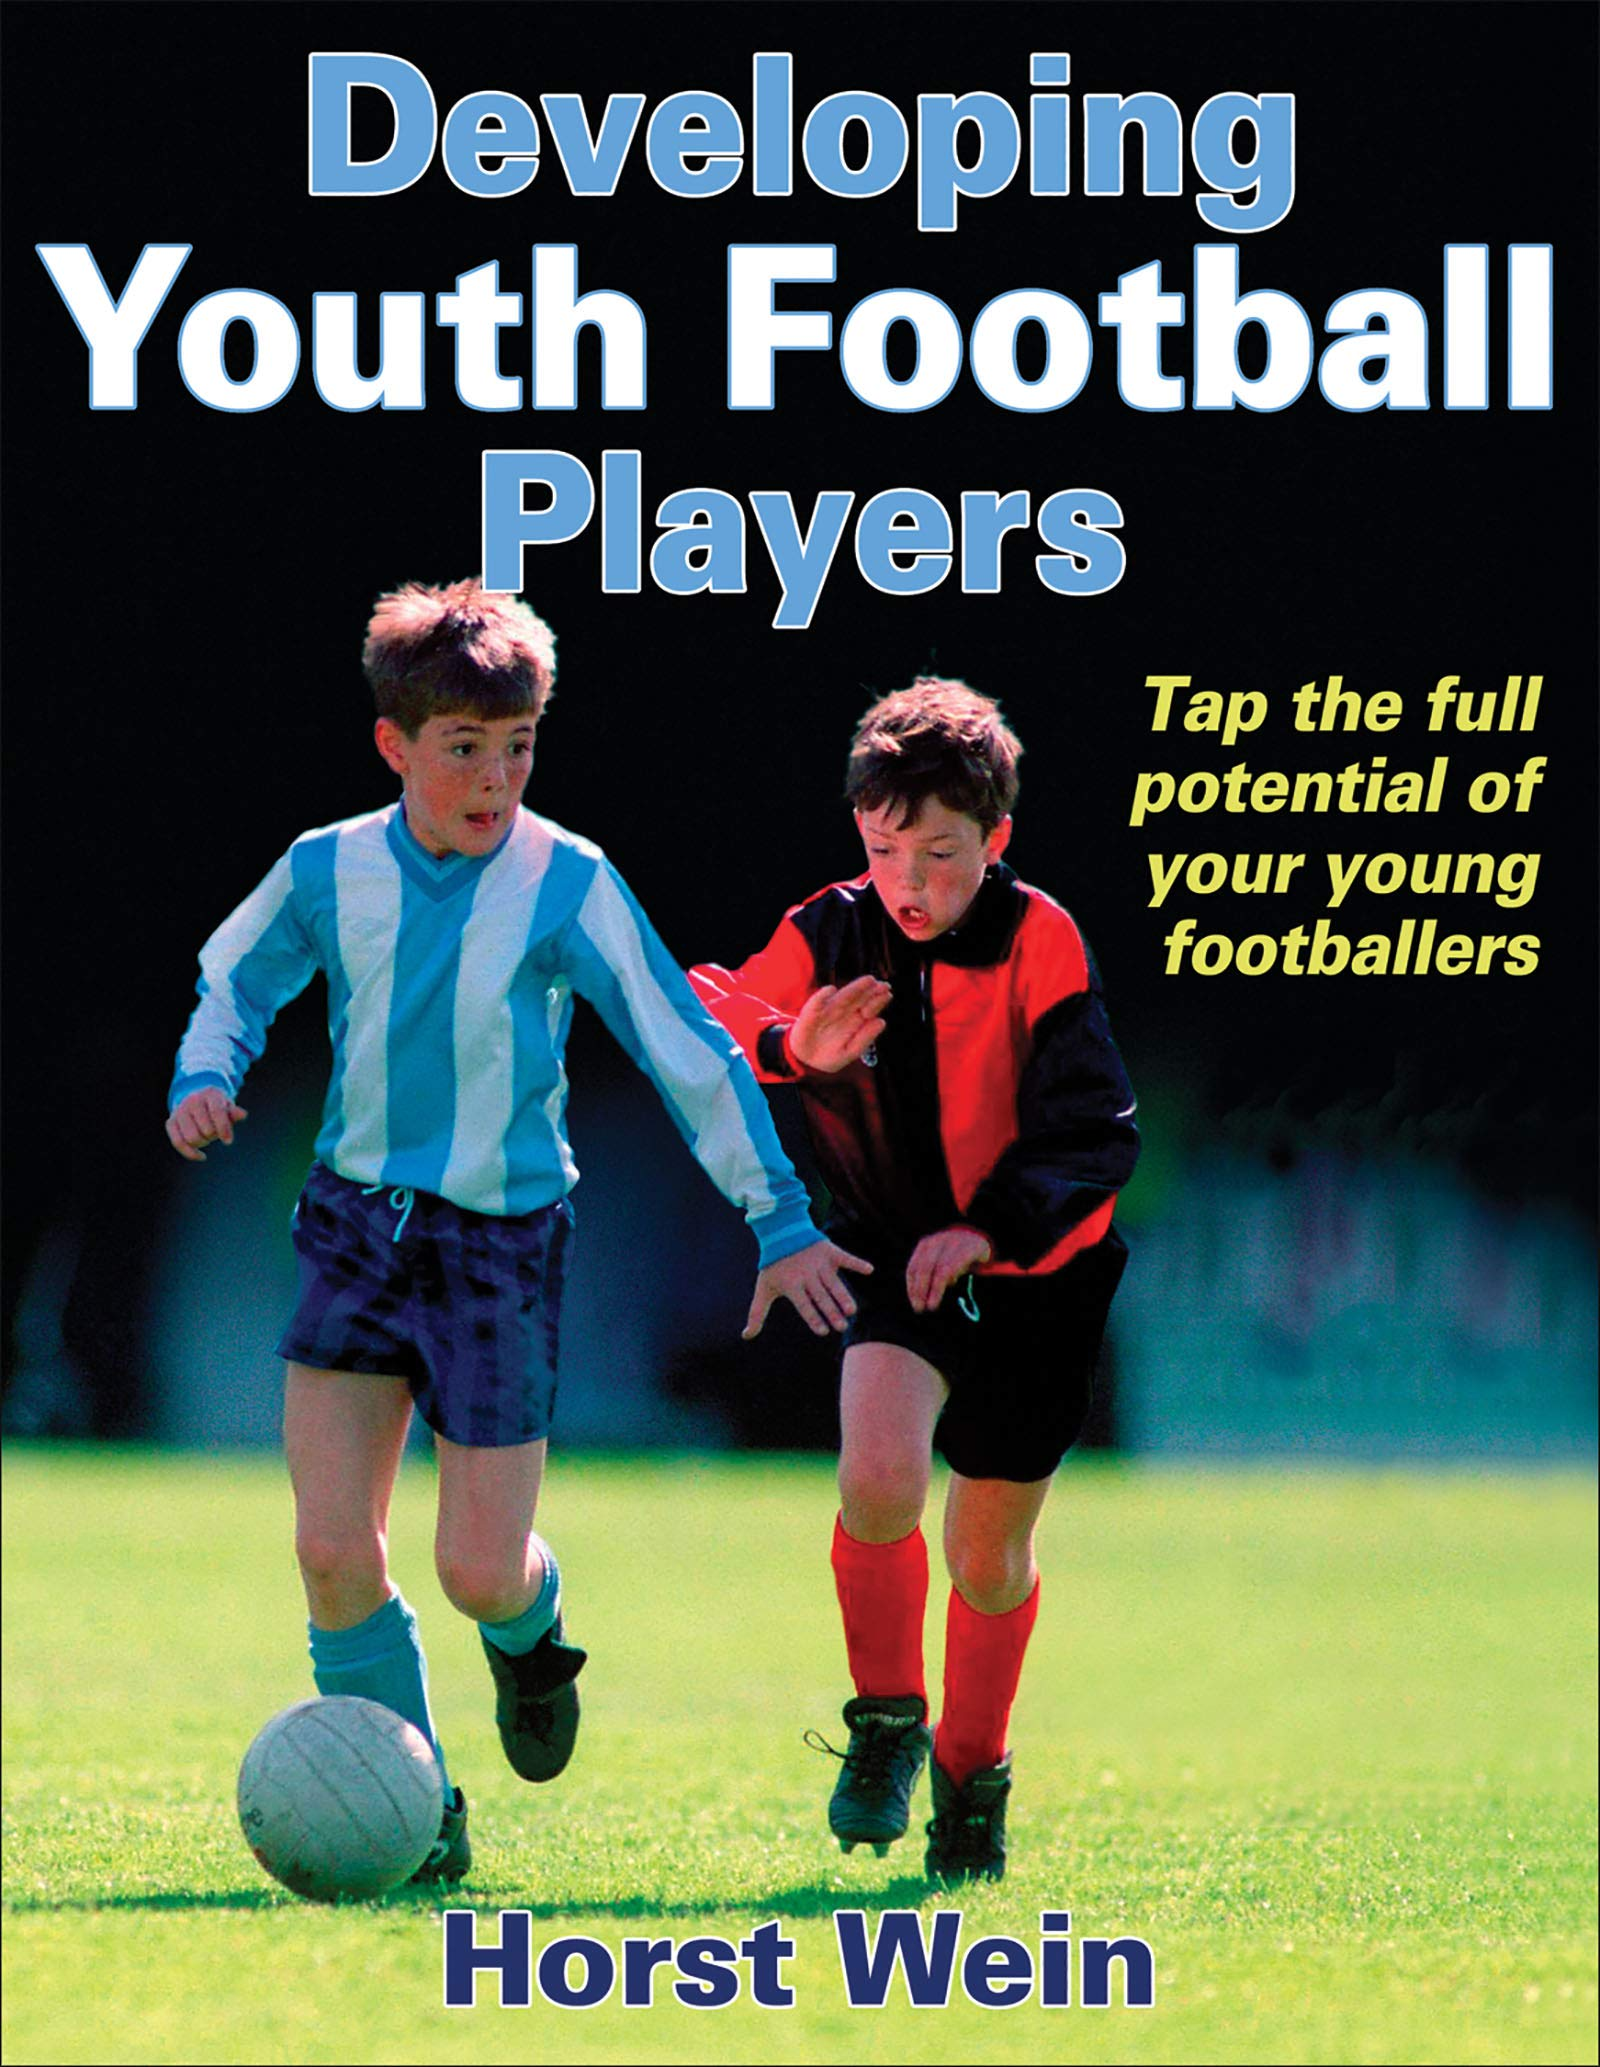 Developing Youth Football Players by imusti